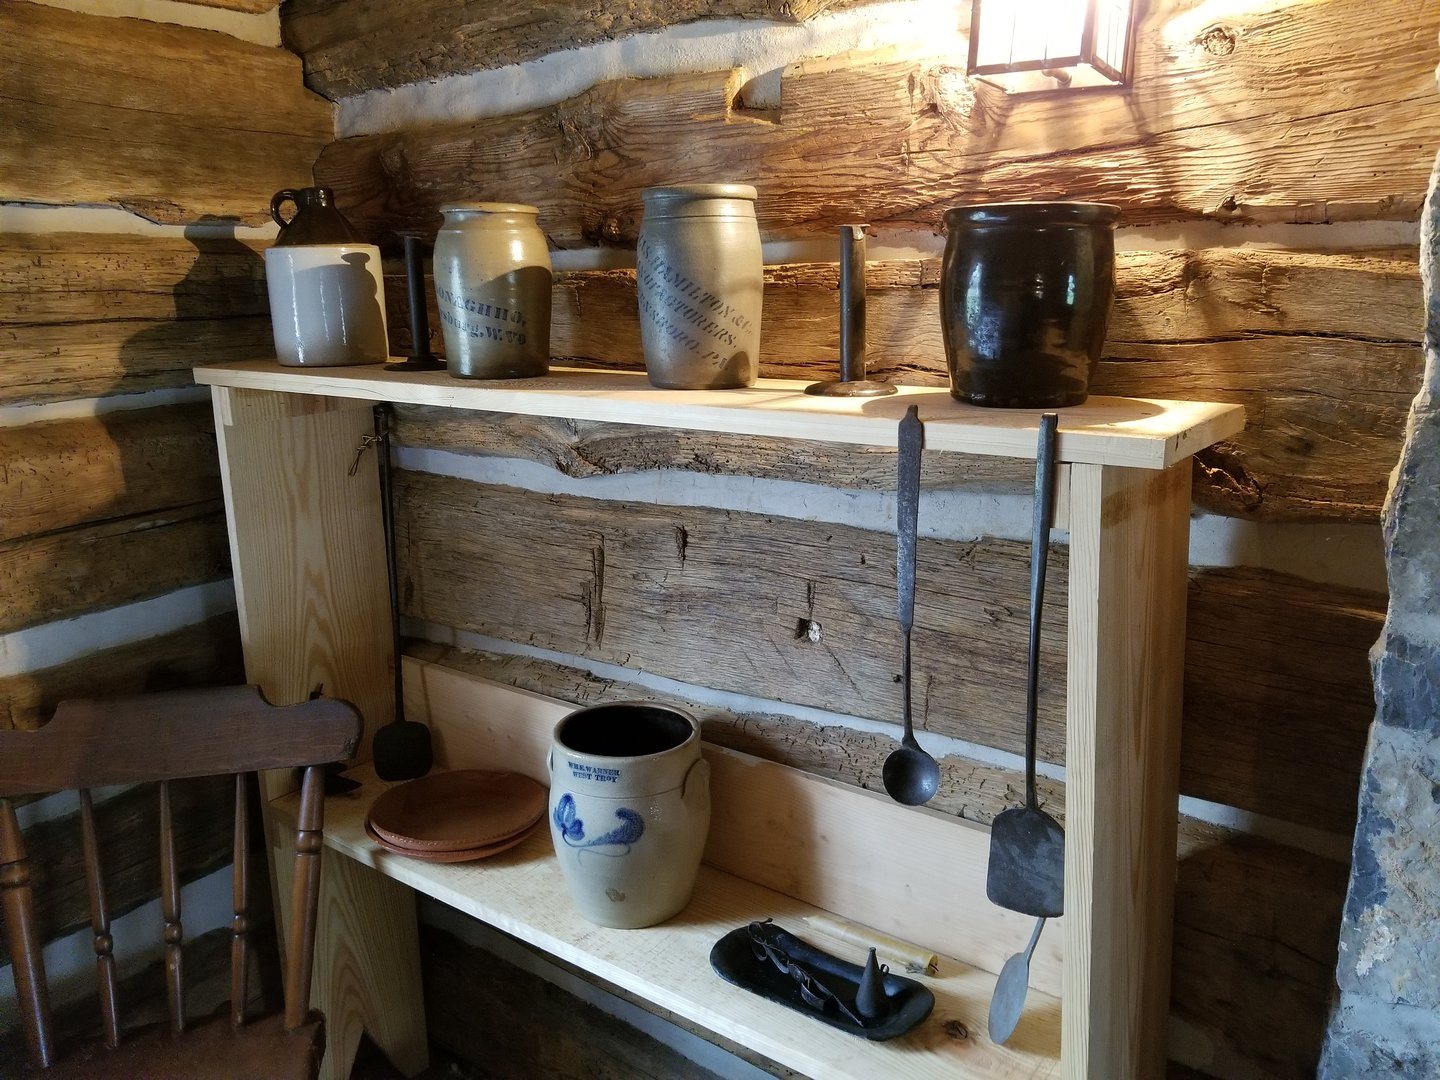 Crocks and other kitchen implements